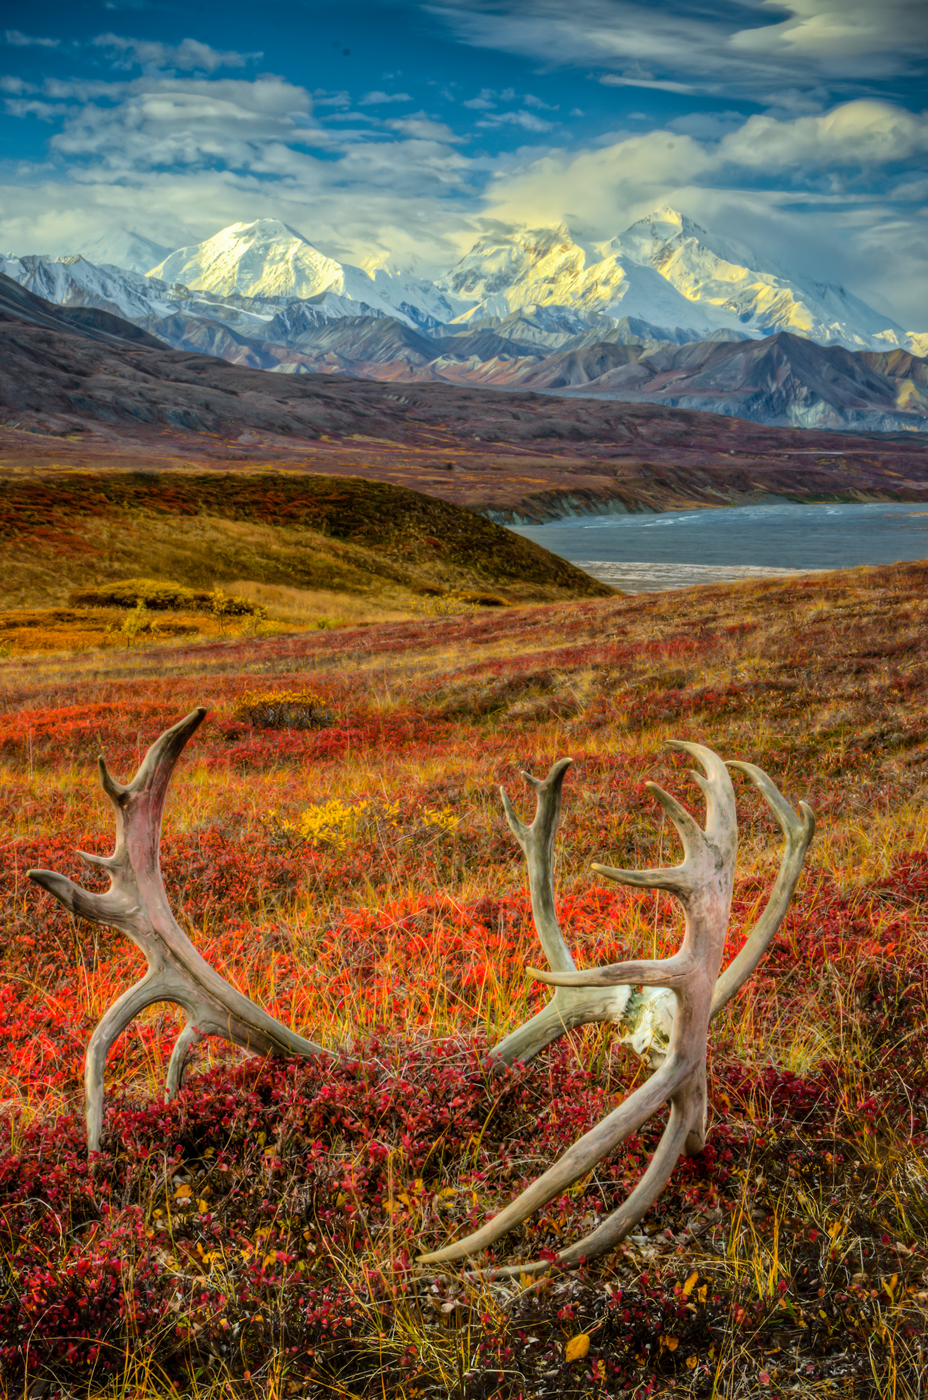 Caribou antlers and tundra in front of Mt. Denali (formerly known as Mt. McKinley).